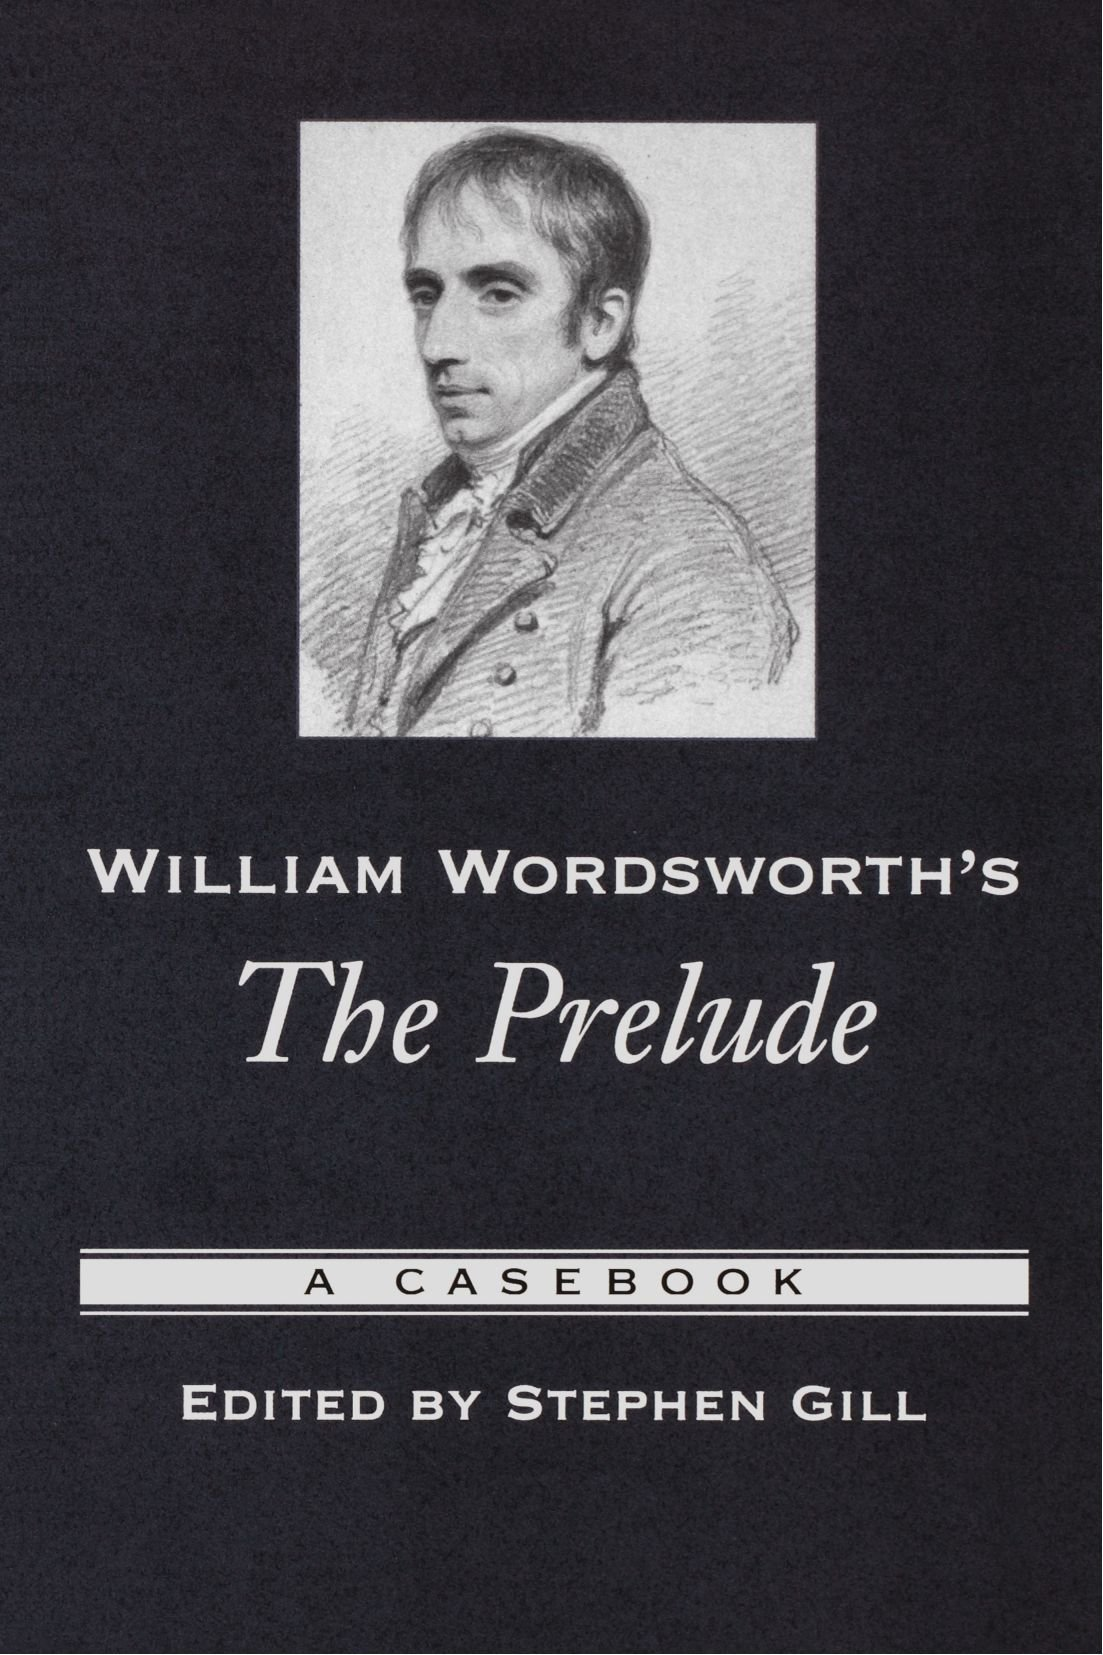 essays on the prelude This lesson will explore wordsworth's the prelude, which is one of wordsworth's most influential and cited poems we'll look at the context.